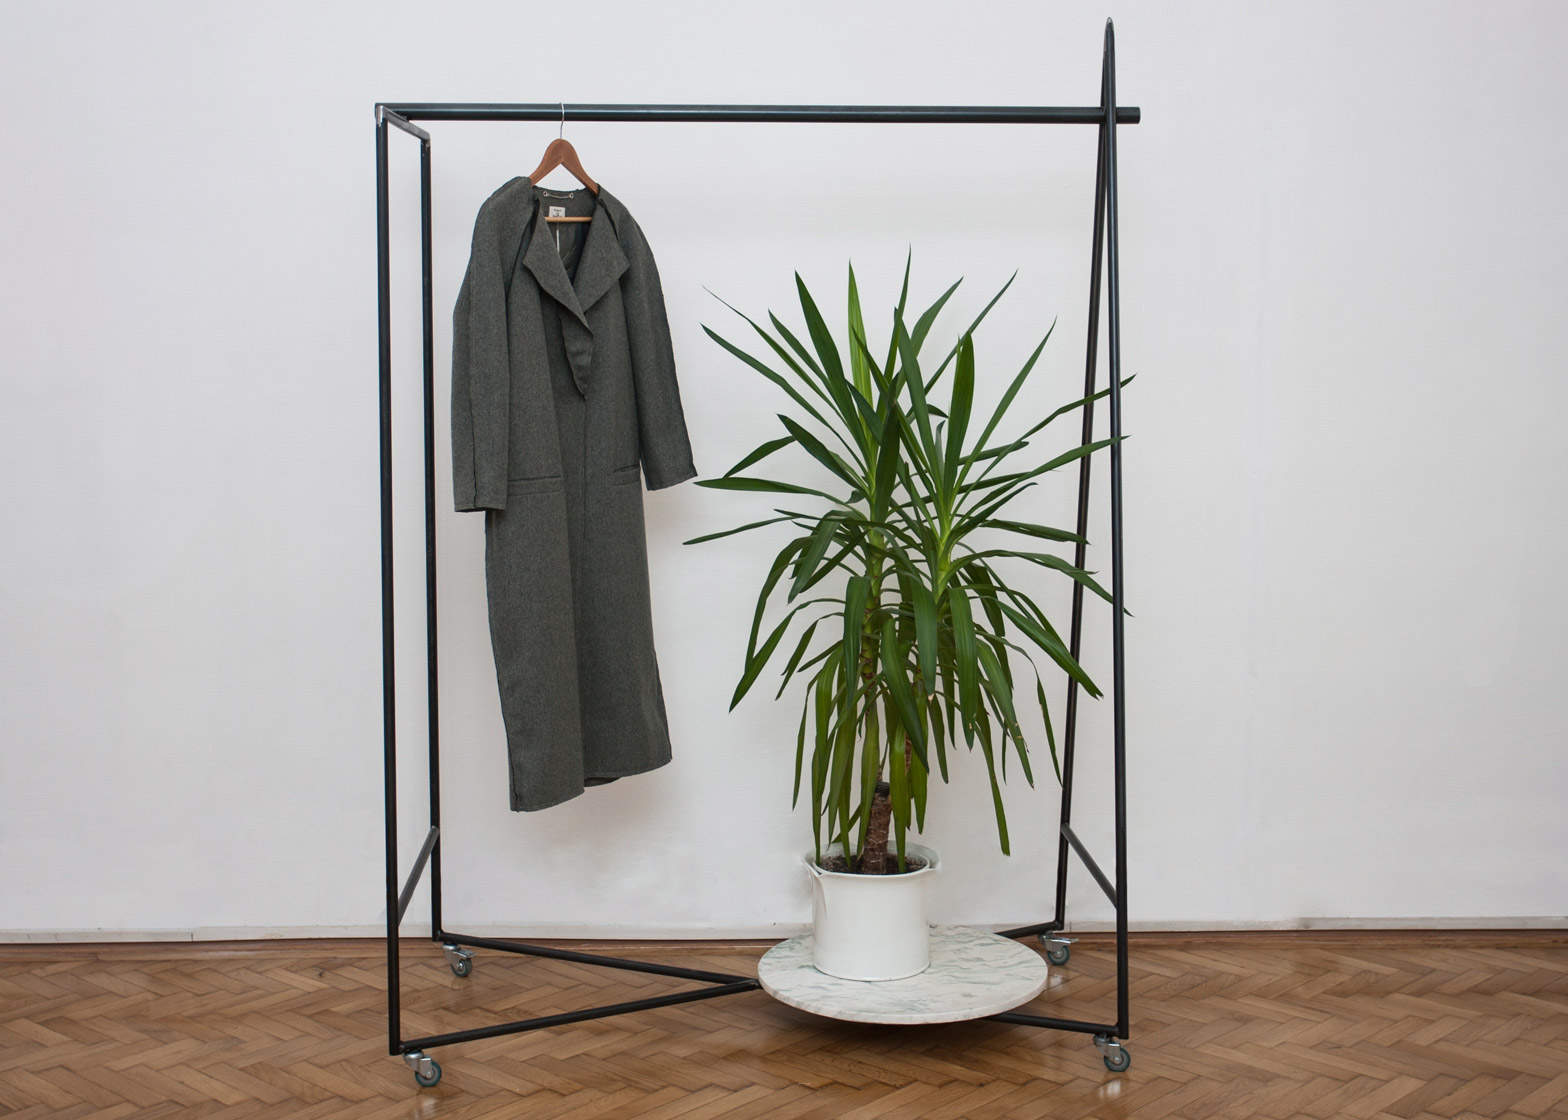 Geometry clothes stand by Radu Abraham